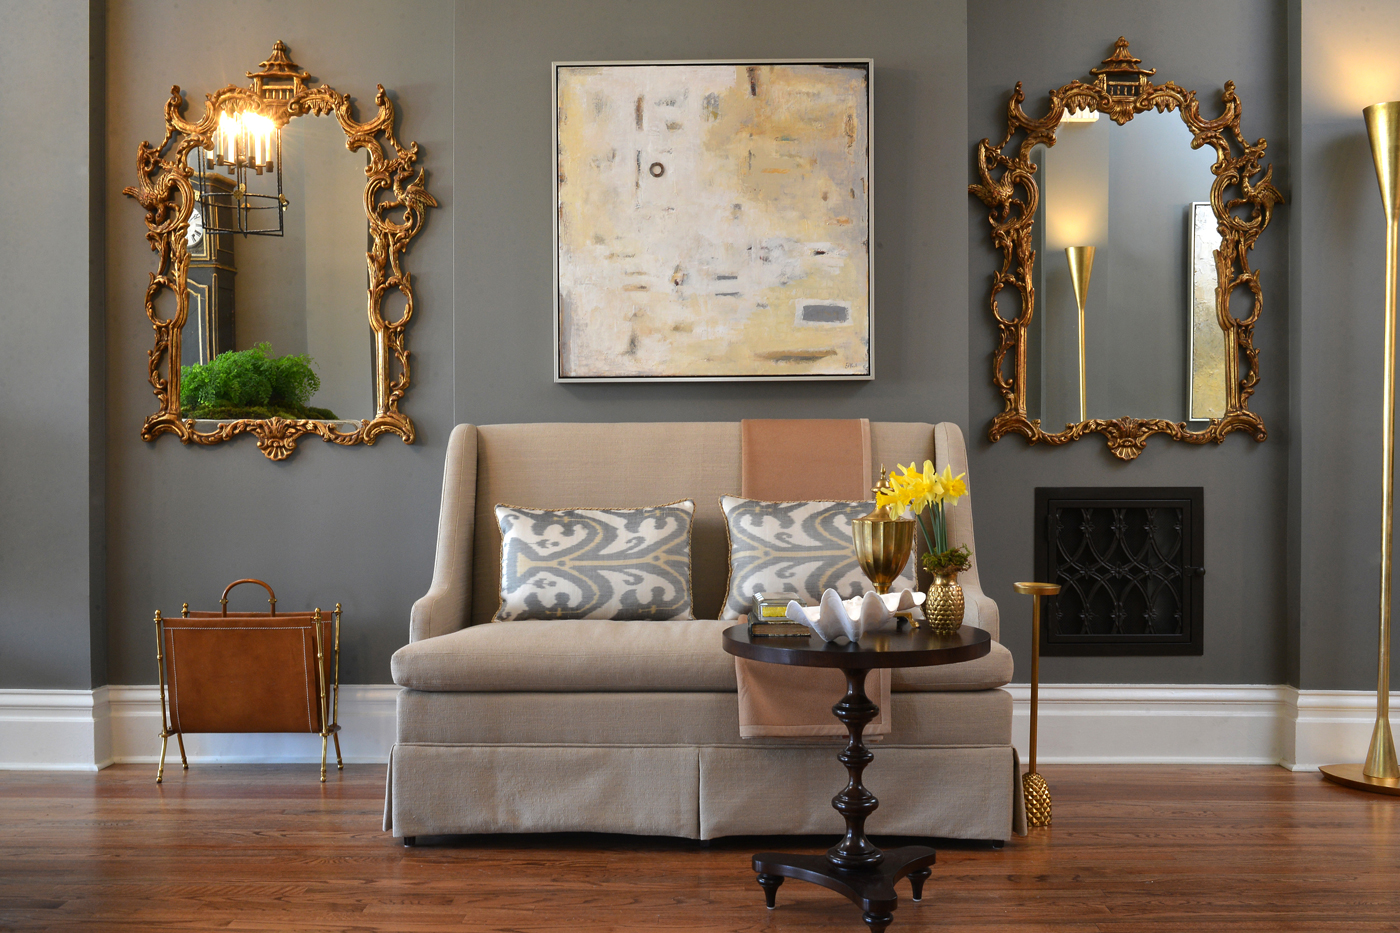 Settee flanked by gold Georgian style chinoiserie mirrors and painting by Nashville artist Ed Nash | Savage Interior Design